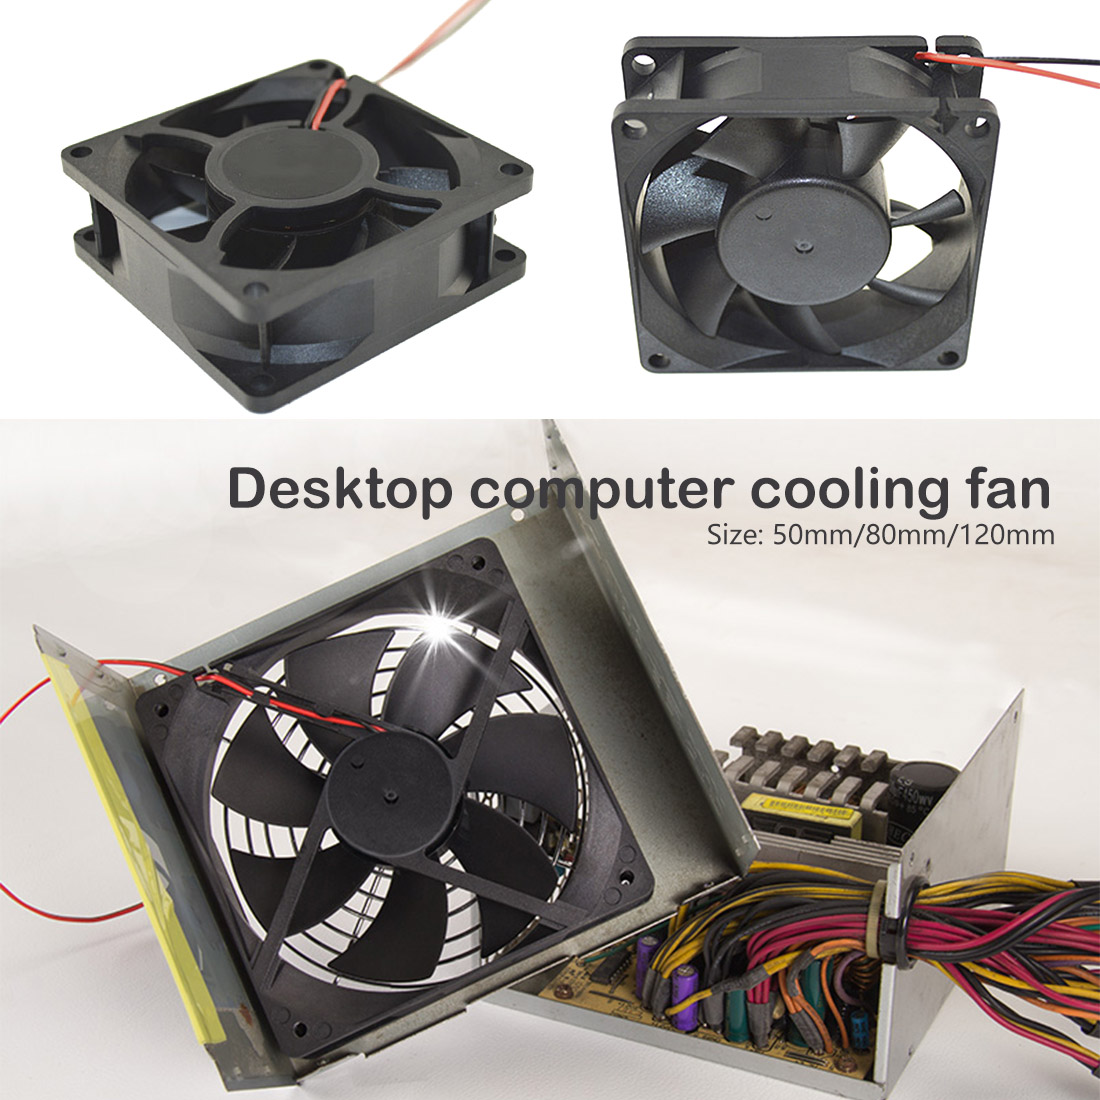 Portable Computer <font><b>Fan</b></font> Cooler 50mm 80mm <font><b>120</b></font> <font><b>mm</b></font> 12V 2 Pin <font><b>PC</b></font> CPU Cooling Cooler <font><b>Fan</b></font> for for Computer Case CPU Cooler Radiator image